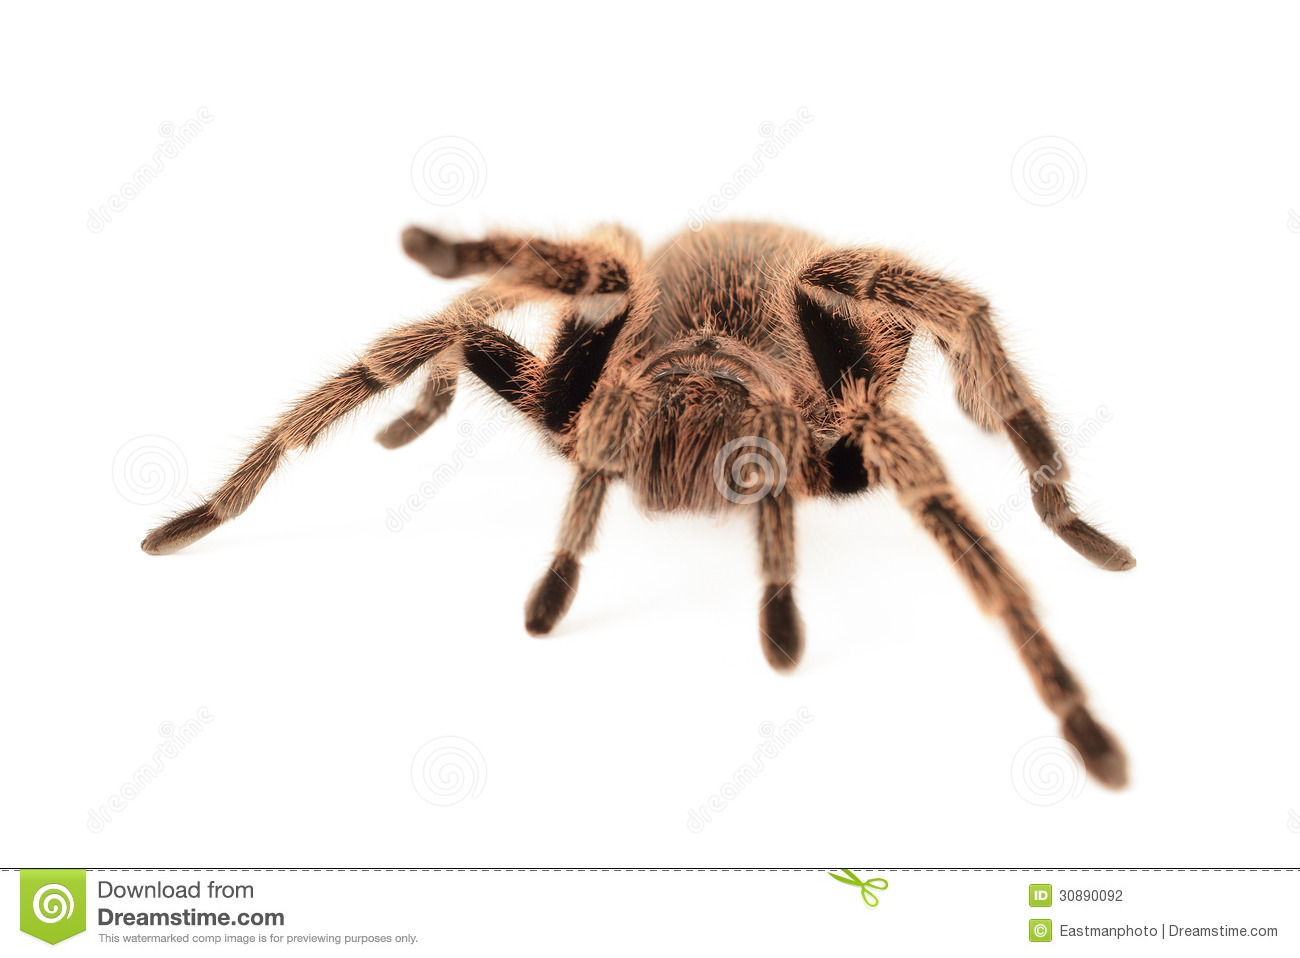 Chilean Rose Tarantula clipart #12, Download drawings